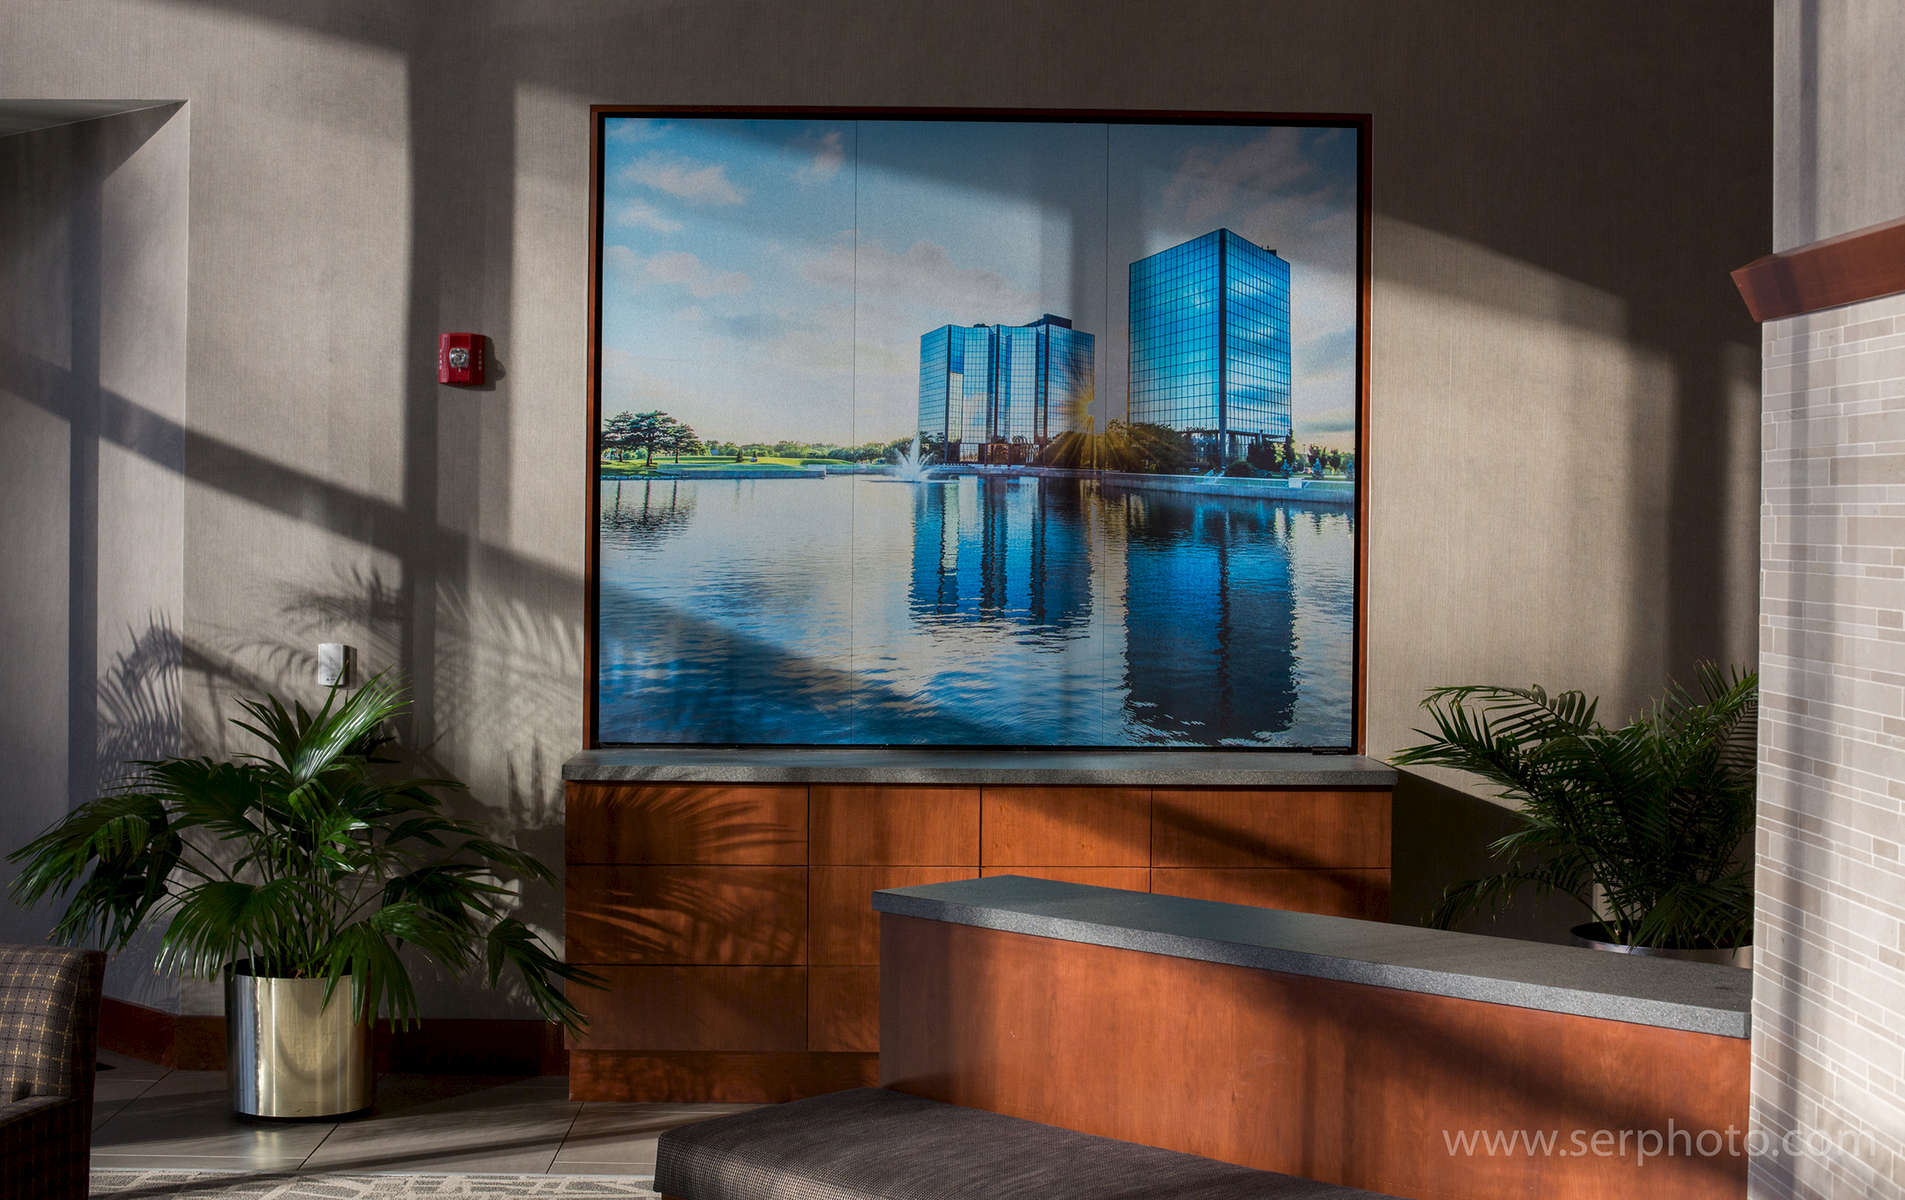 Three 27x69{quote} panels on brushed aluminum; custom mounting in recessed wall inset.  Custom photography of Shamrock Towers in Overland Park, KS commissioned by client. Client: Ryan Transportation Services